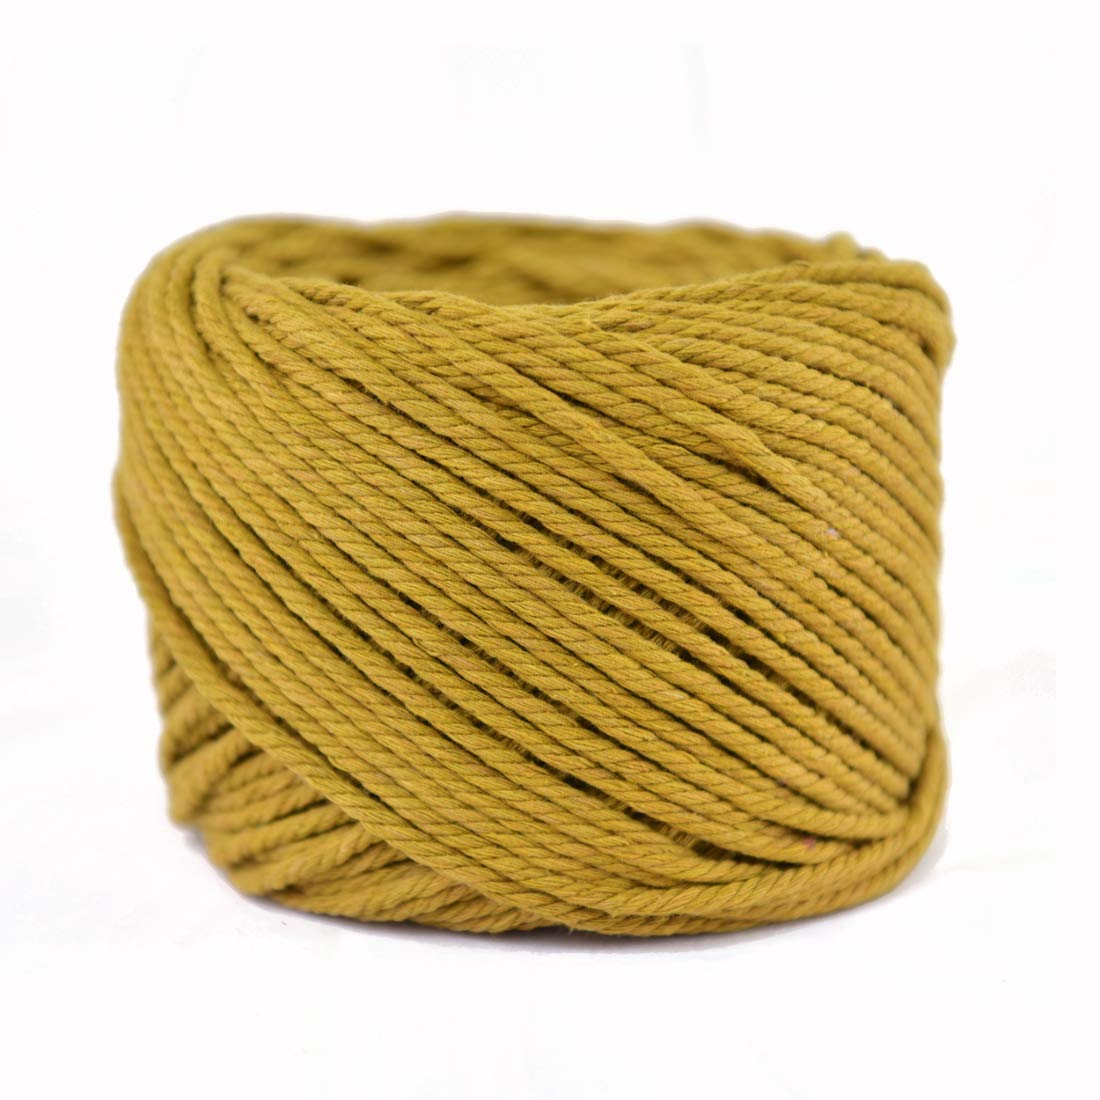 White, 3mm x100m About 109 yd Handmade Decorations Natural Cotton Bohemia Macrame DIY Wall Hanging Plant Hanger Craft Making Knitting Cord Rope Natural Color Beige Macram/é Cord